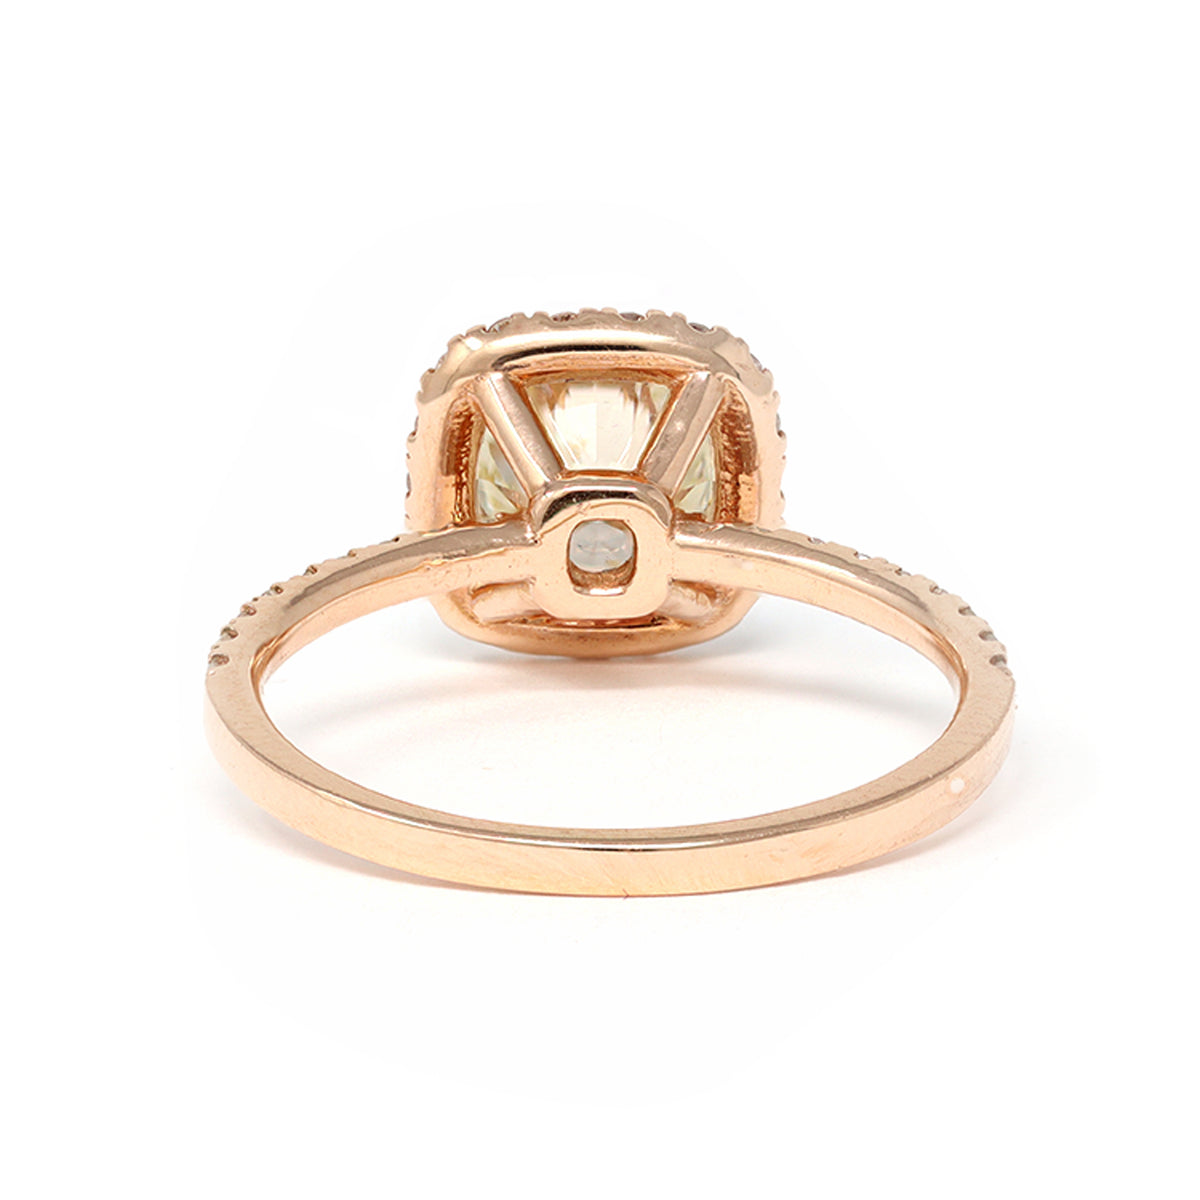 GIA Certified Modern Halo Solitaire 1.23 Carat Diamond Ring in 14 Karat Gold back view